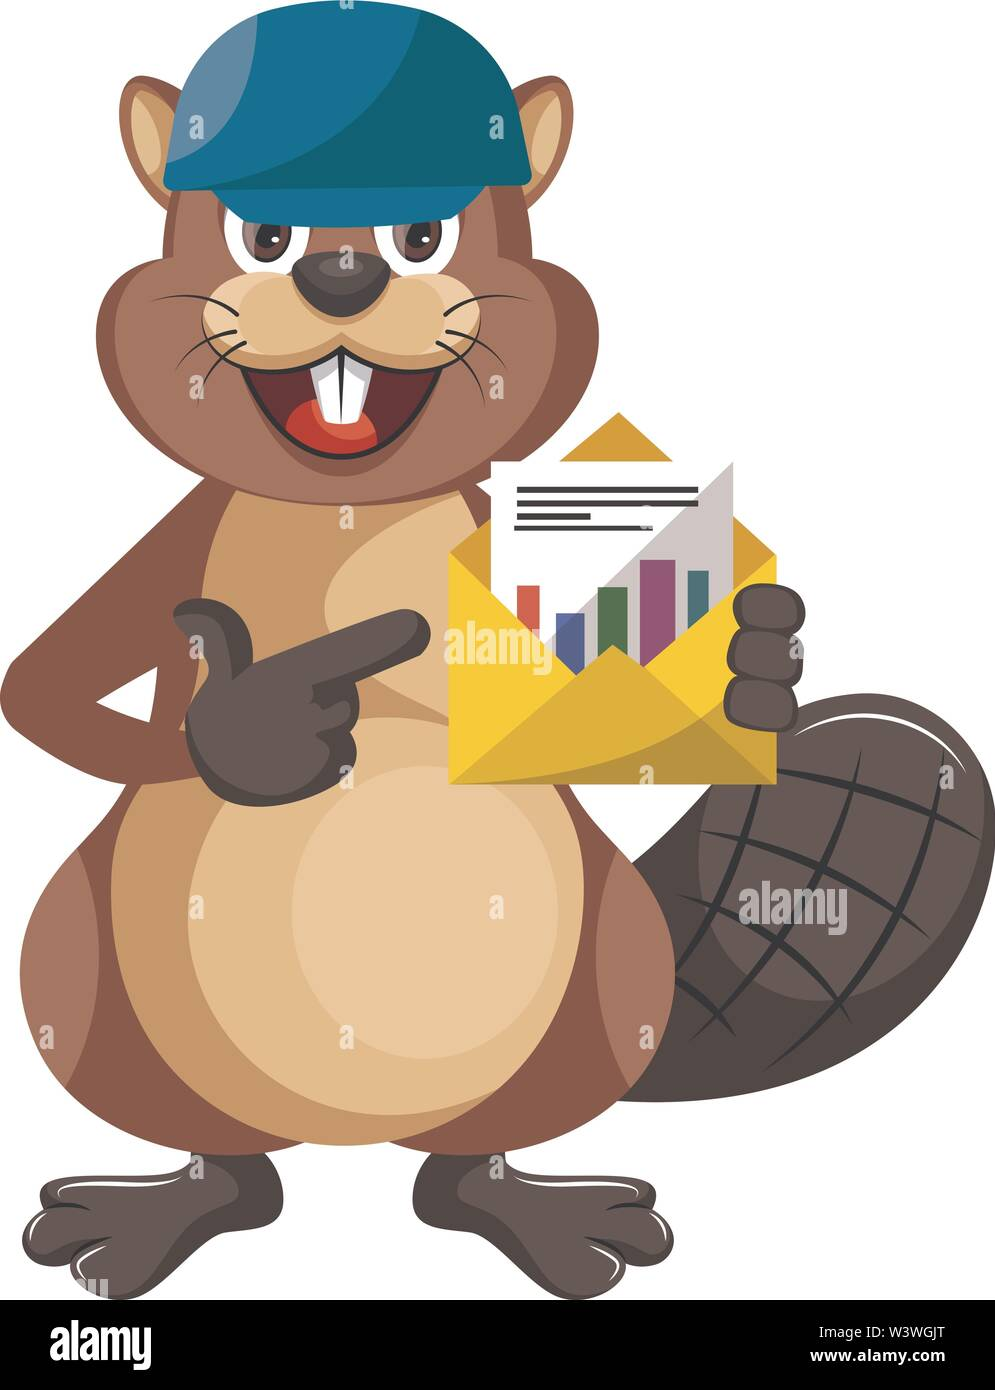 Beaver with blue hat, illustration, vector on white background. - Stock Image